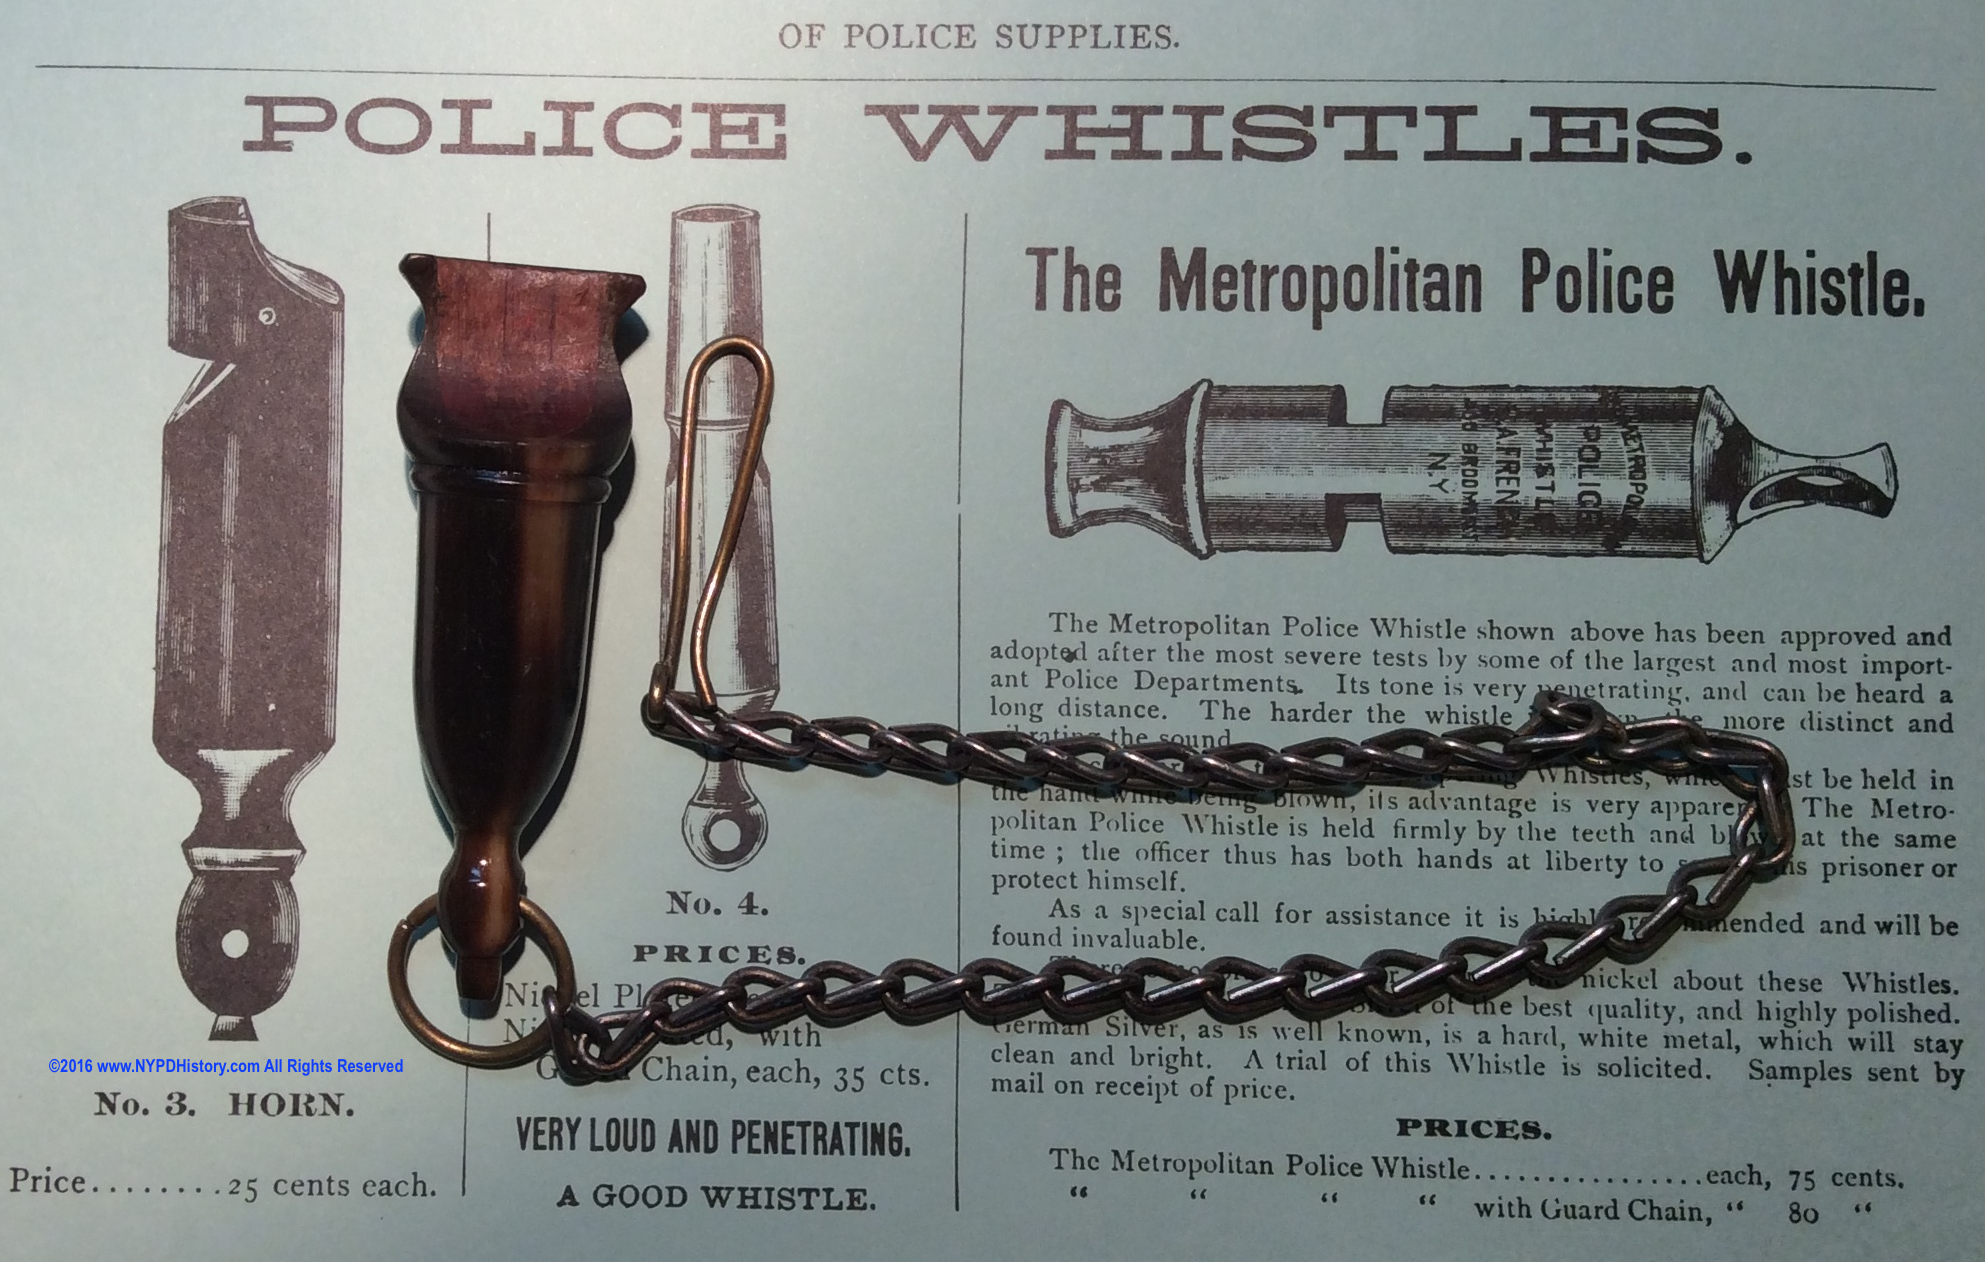 1897 S.A. French & Co. Police Catalog